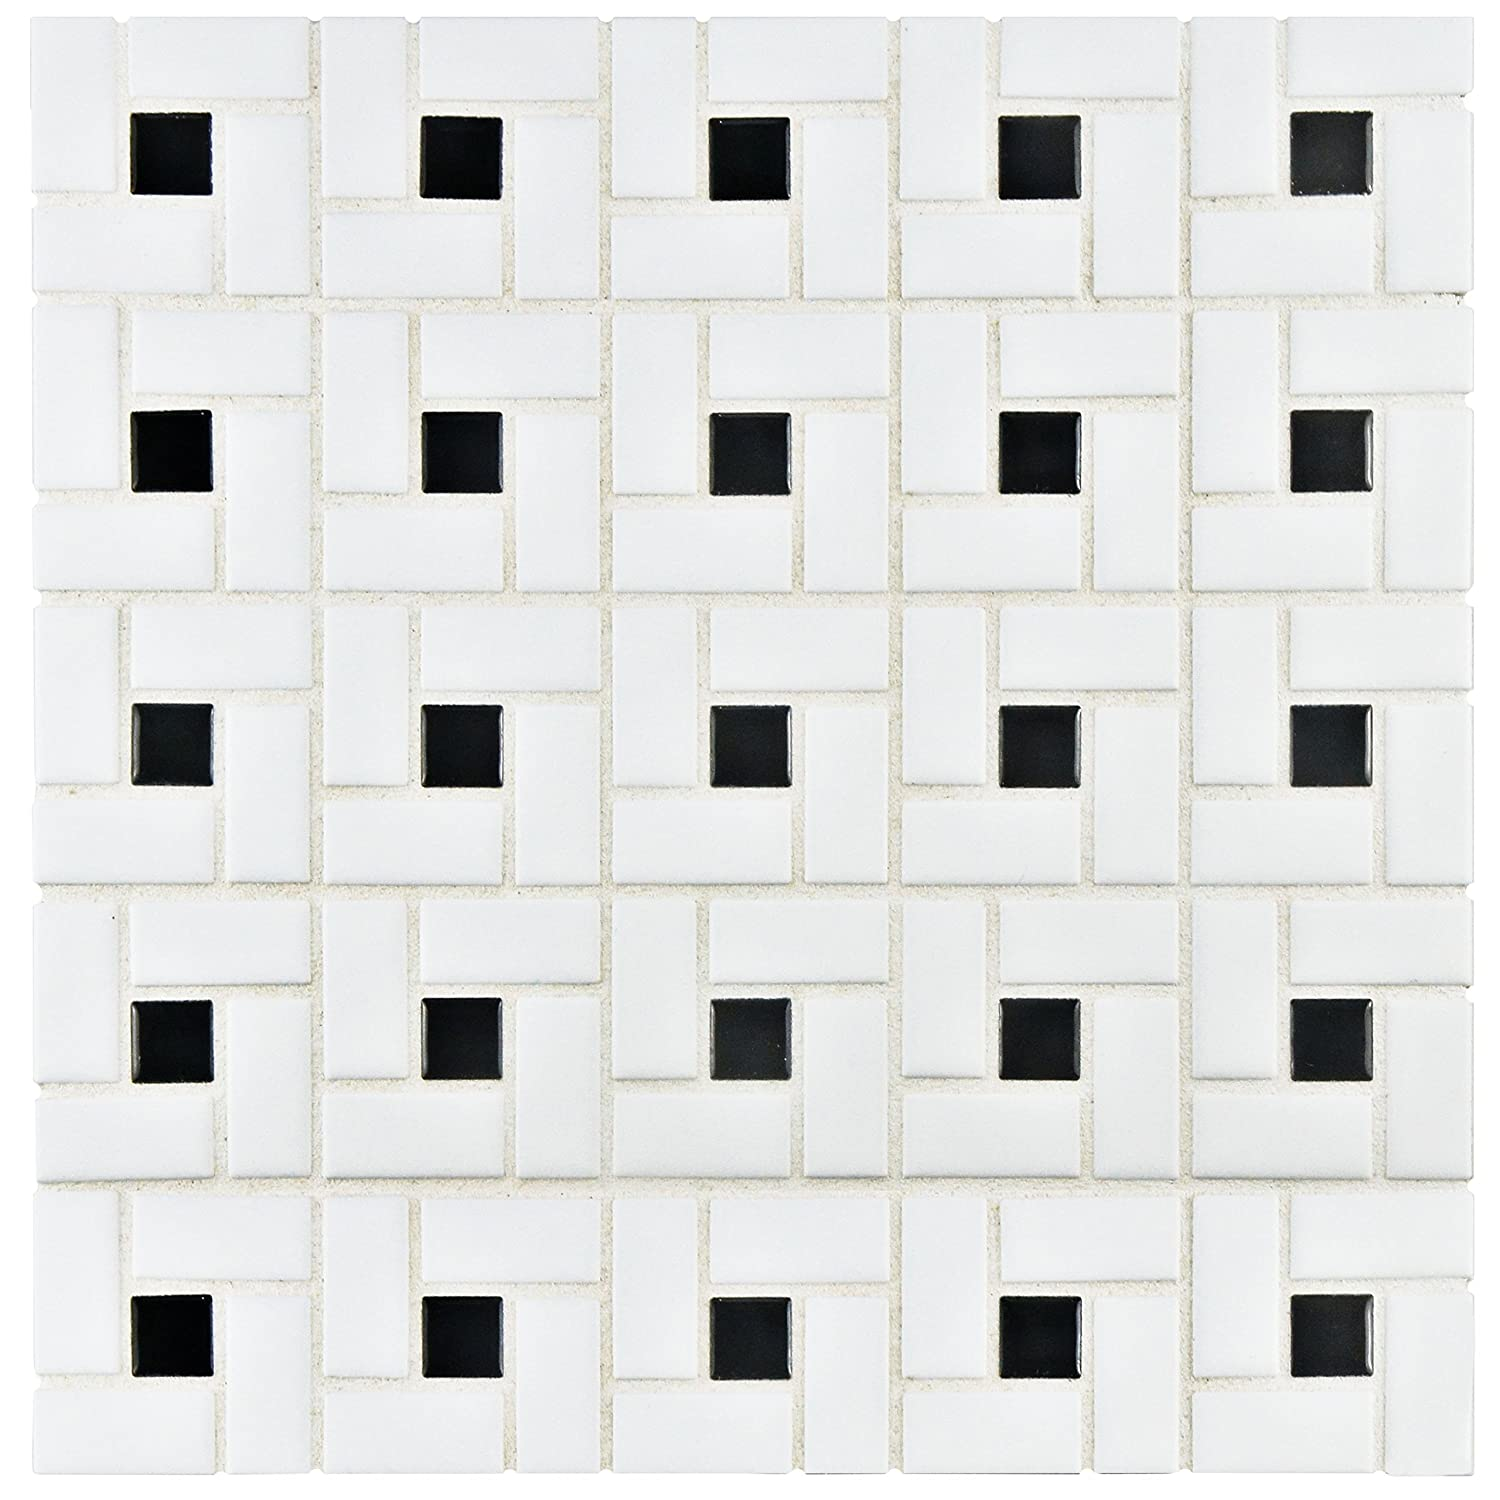 Somertile fkomsp20 retro spiral porcelain floor and wall tile somertile fkomsp20 retro spiral porcelain floor and wall tile 125 x 125 whiteblack ceramic tiles amazon dailygadgetfo Gallery